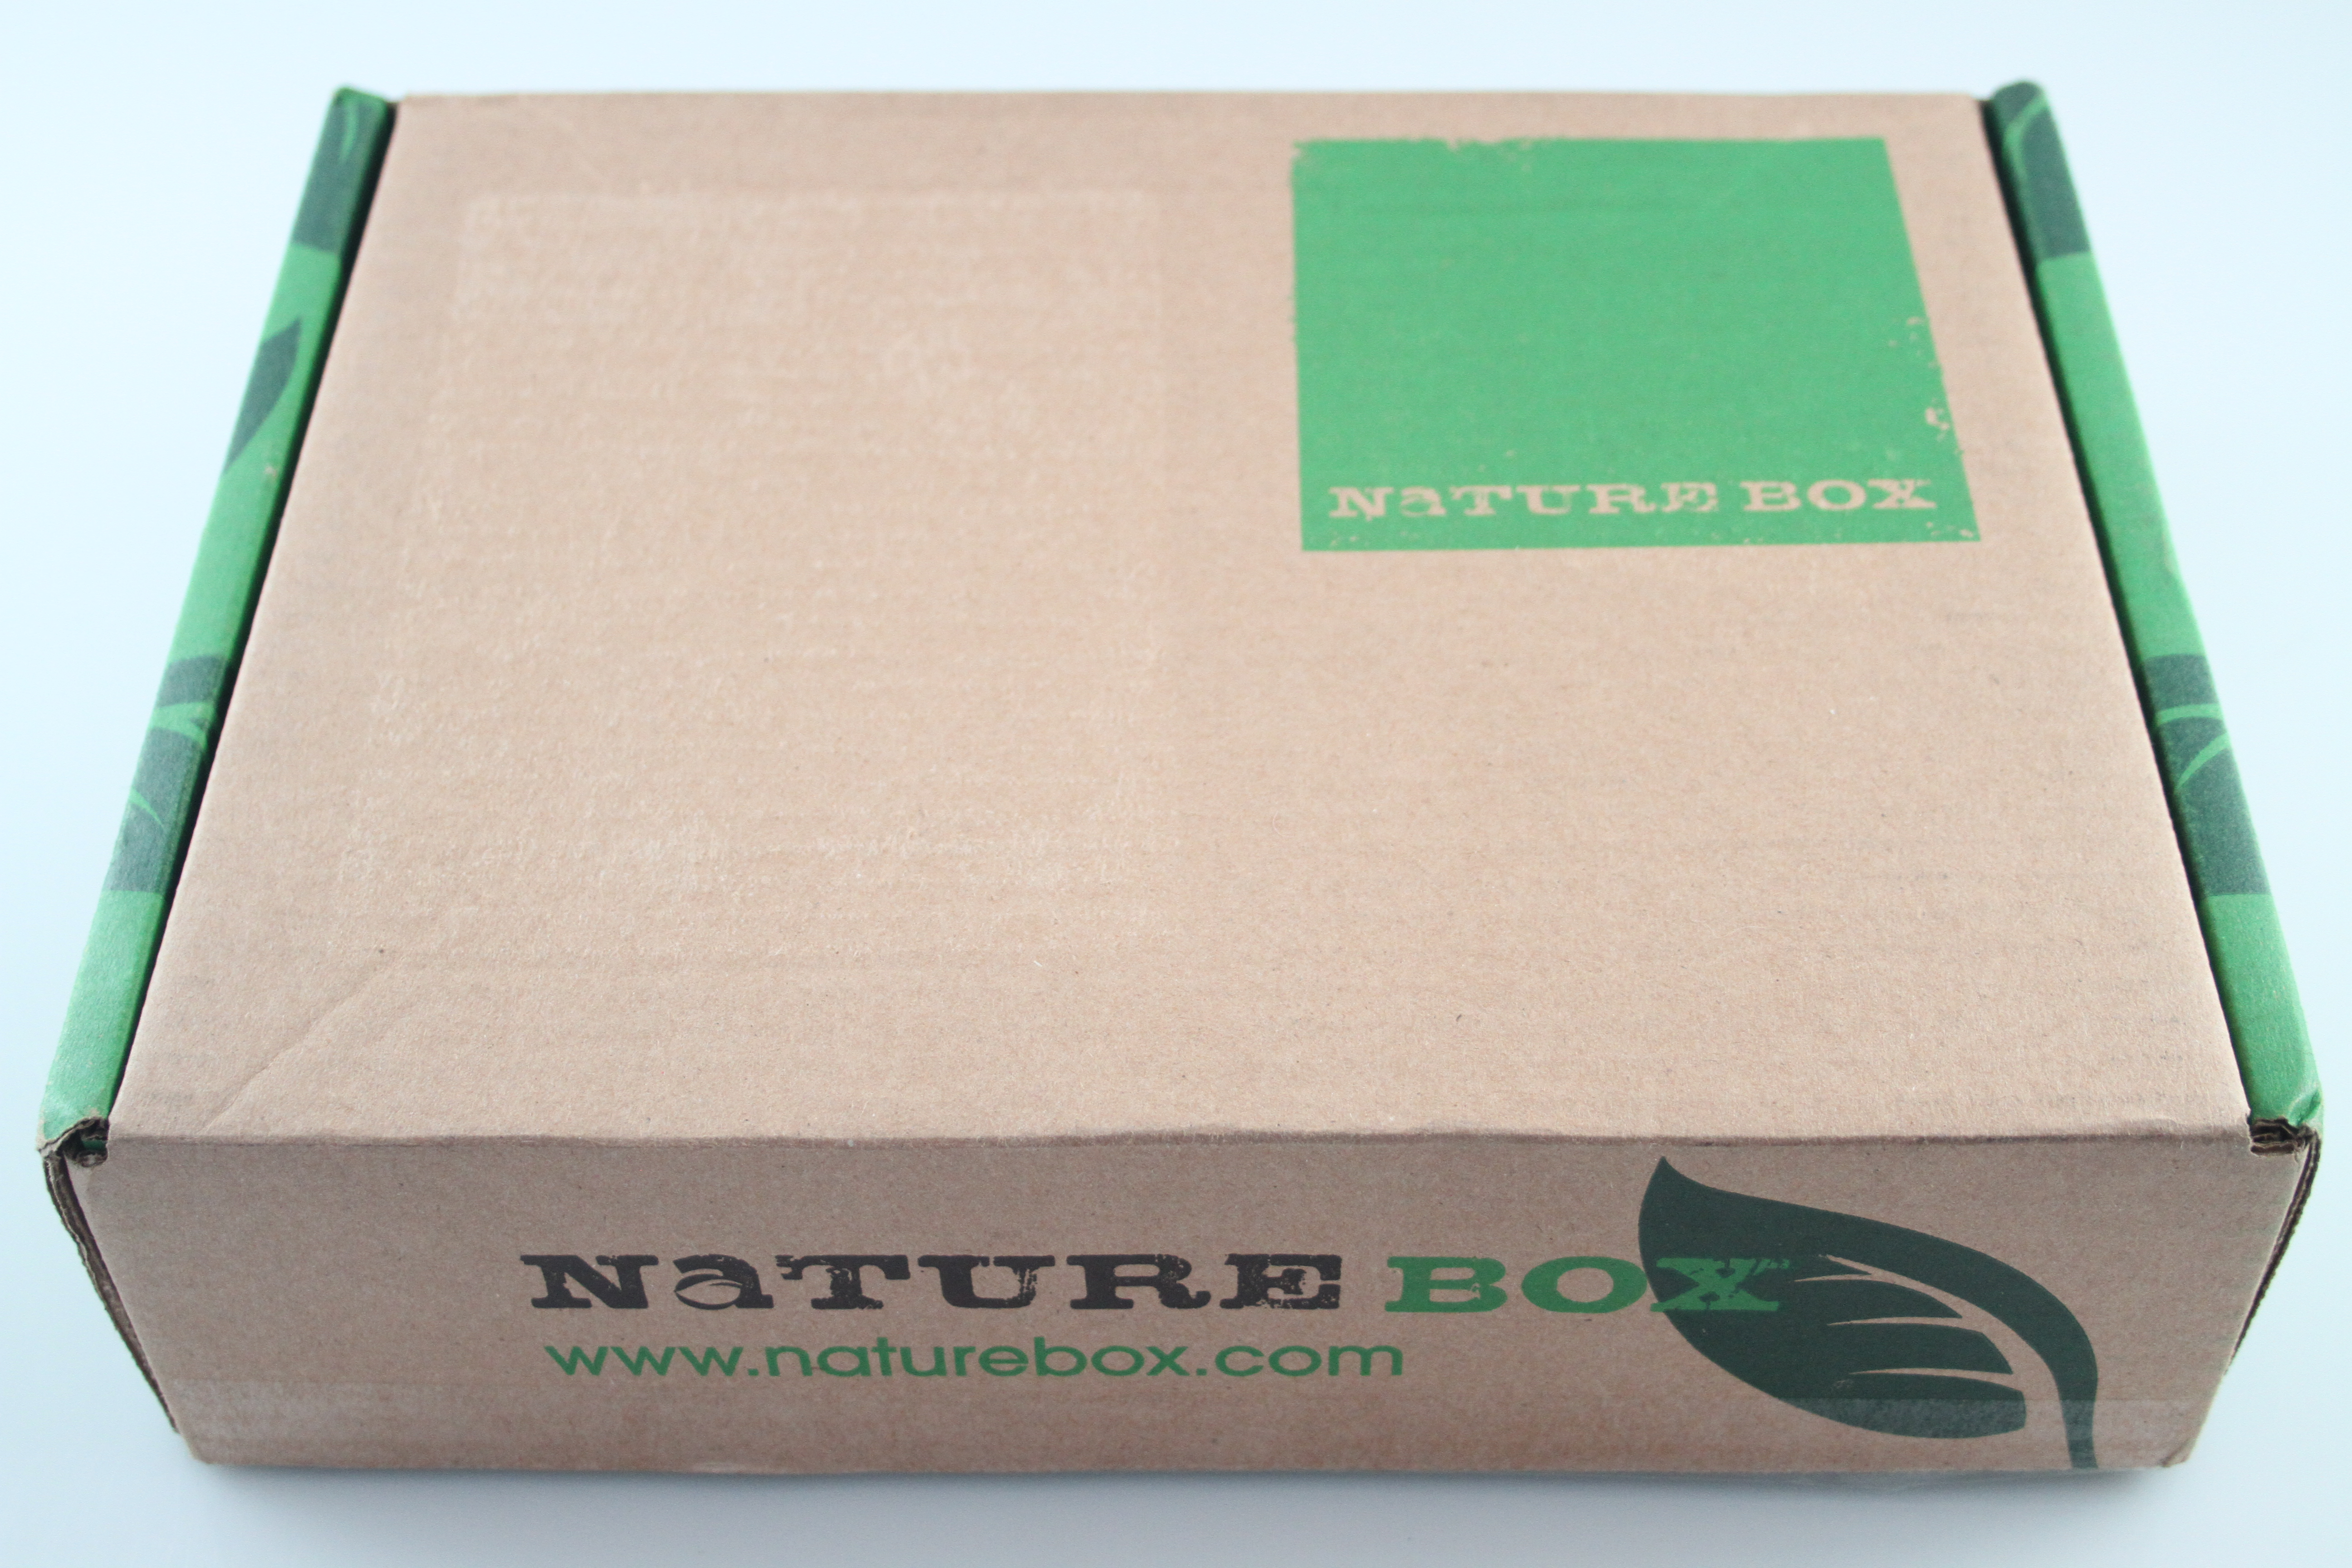 Naturebox February 2014 Review and $10.00 Discount - Subscription Box ...